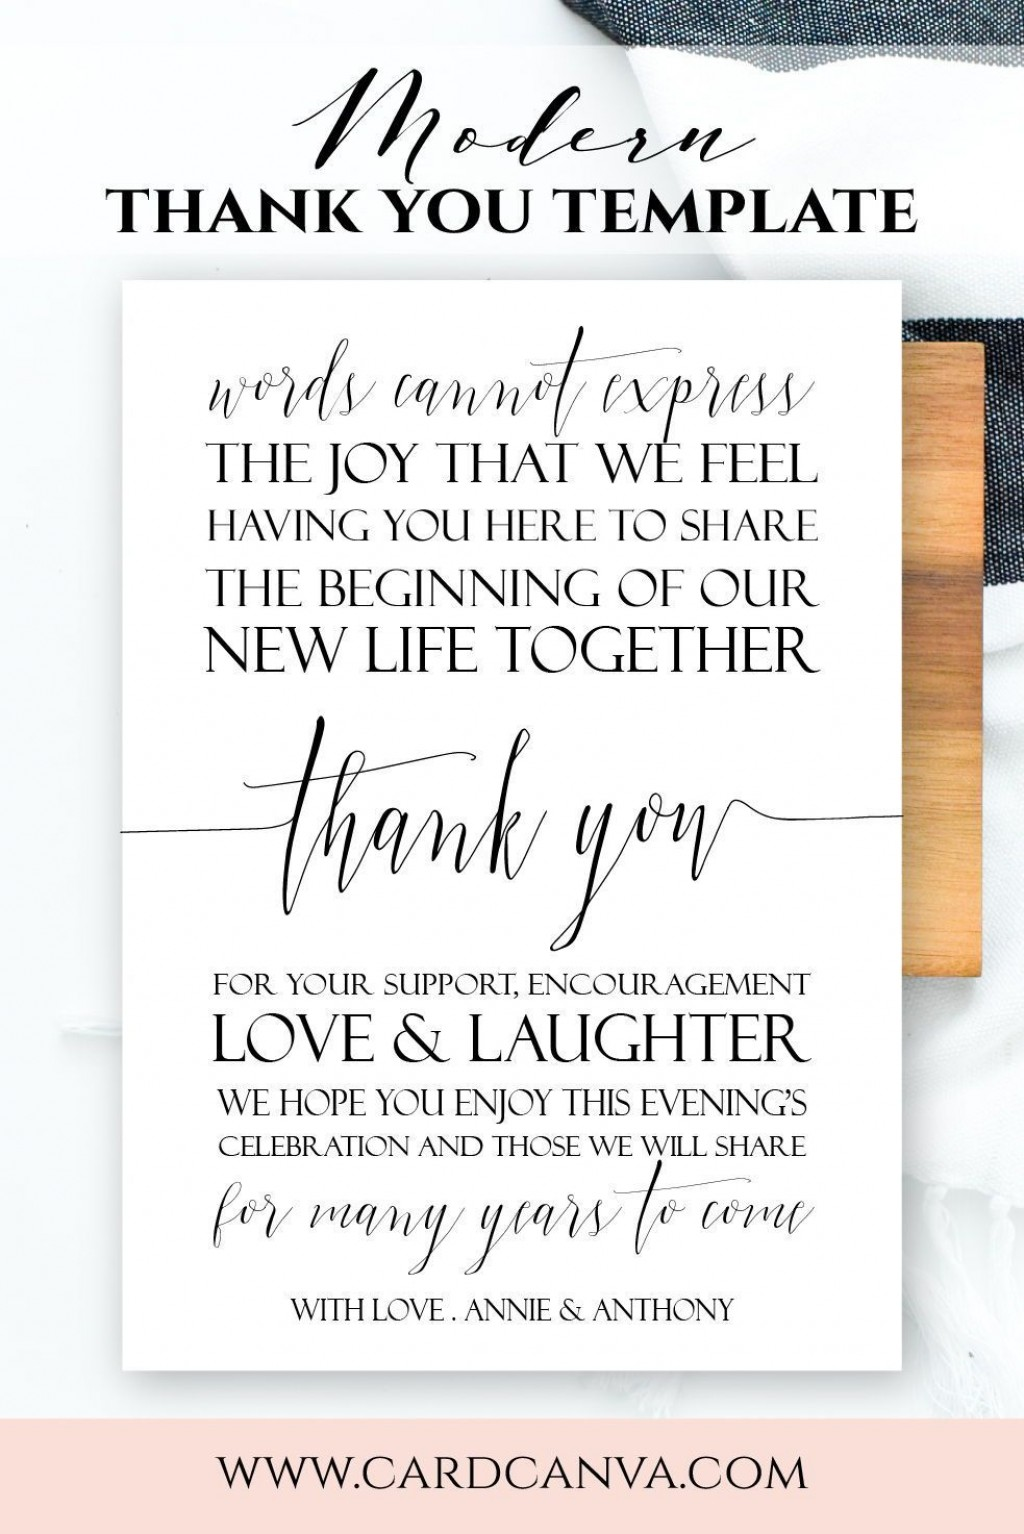 000 Staggering Wedding Welcome Letter Template Word Highest Clarity Large